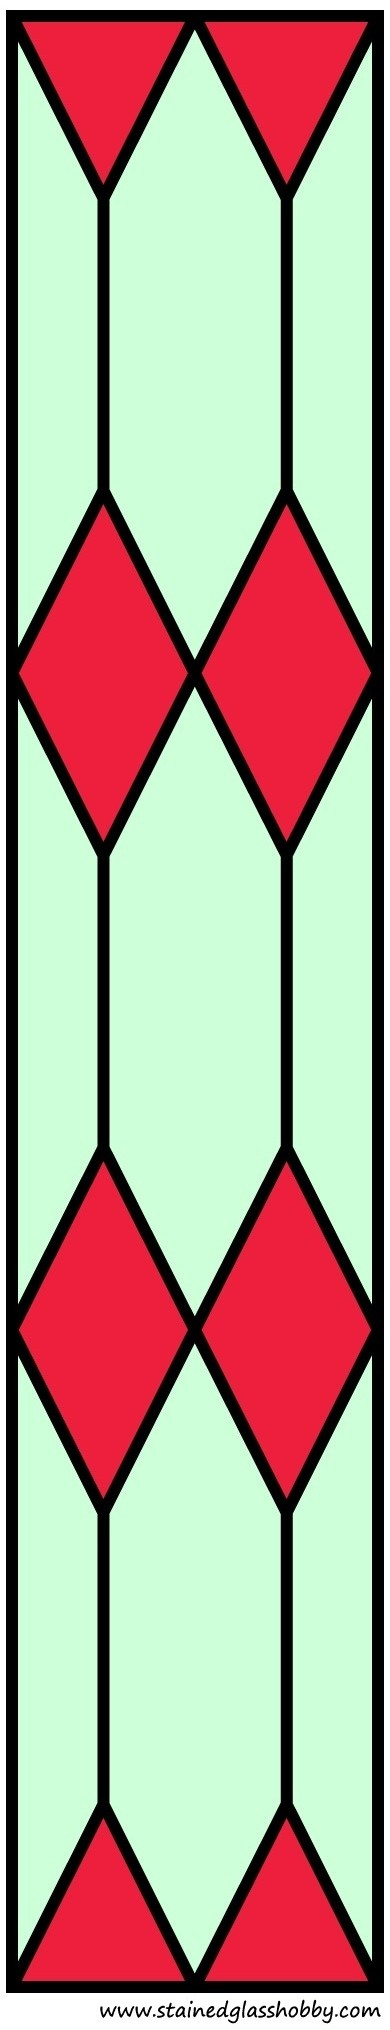 Color stained glass diamond design door panel